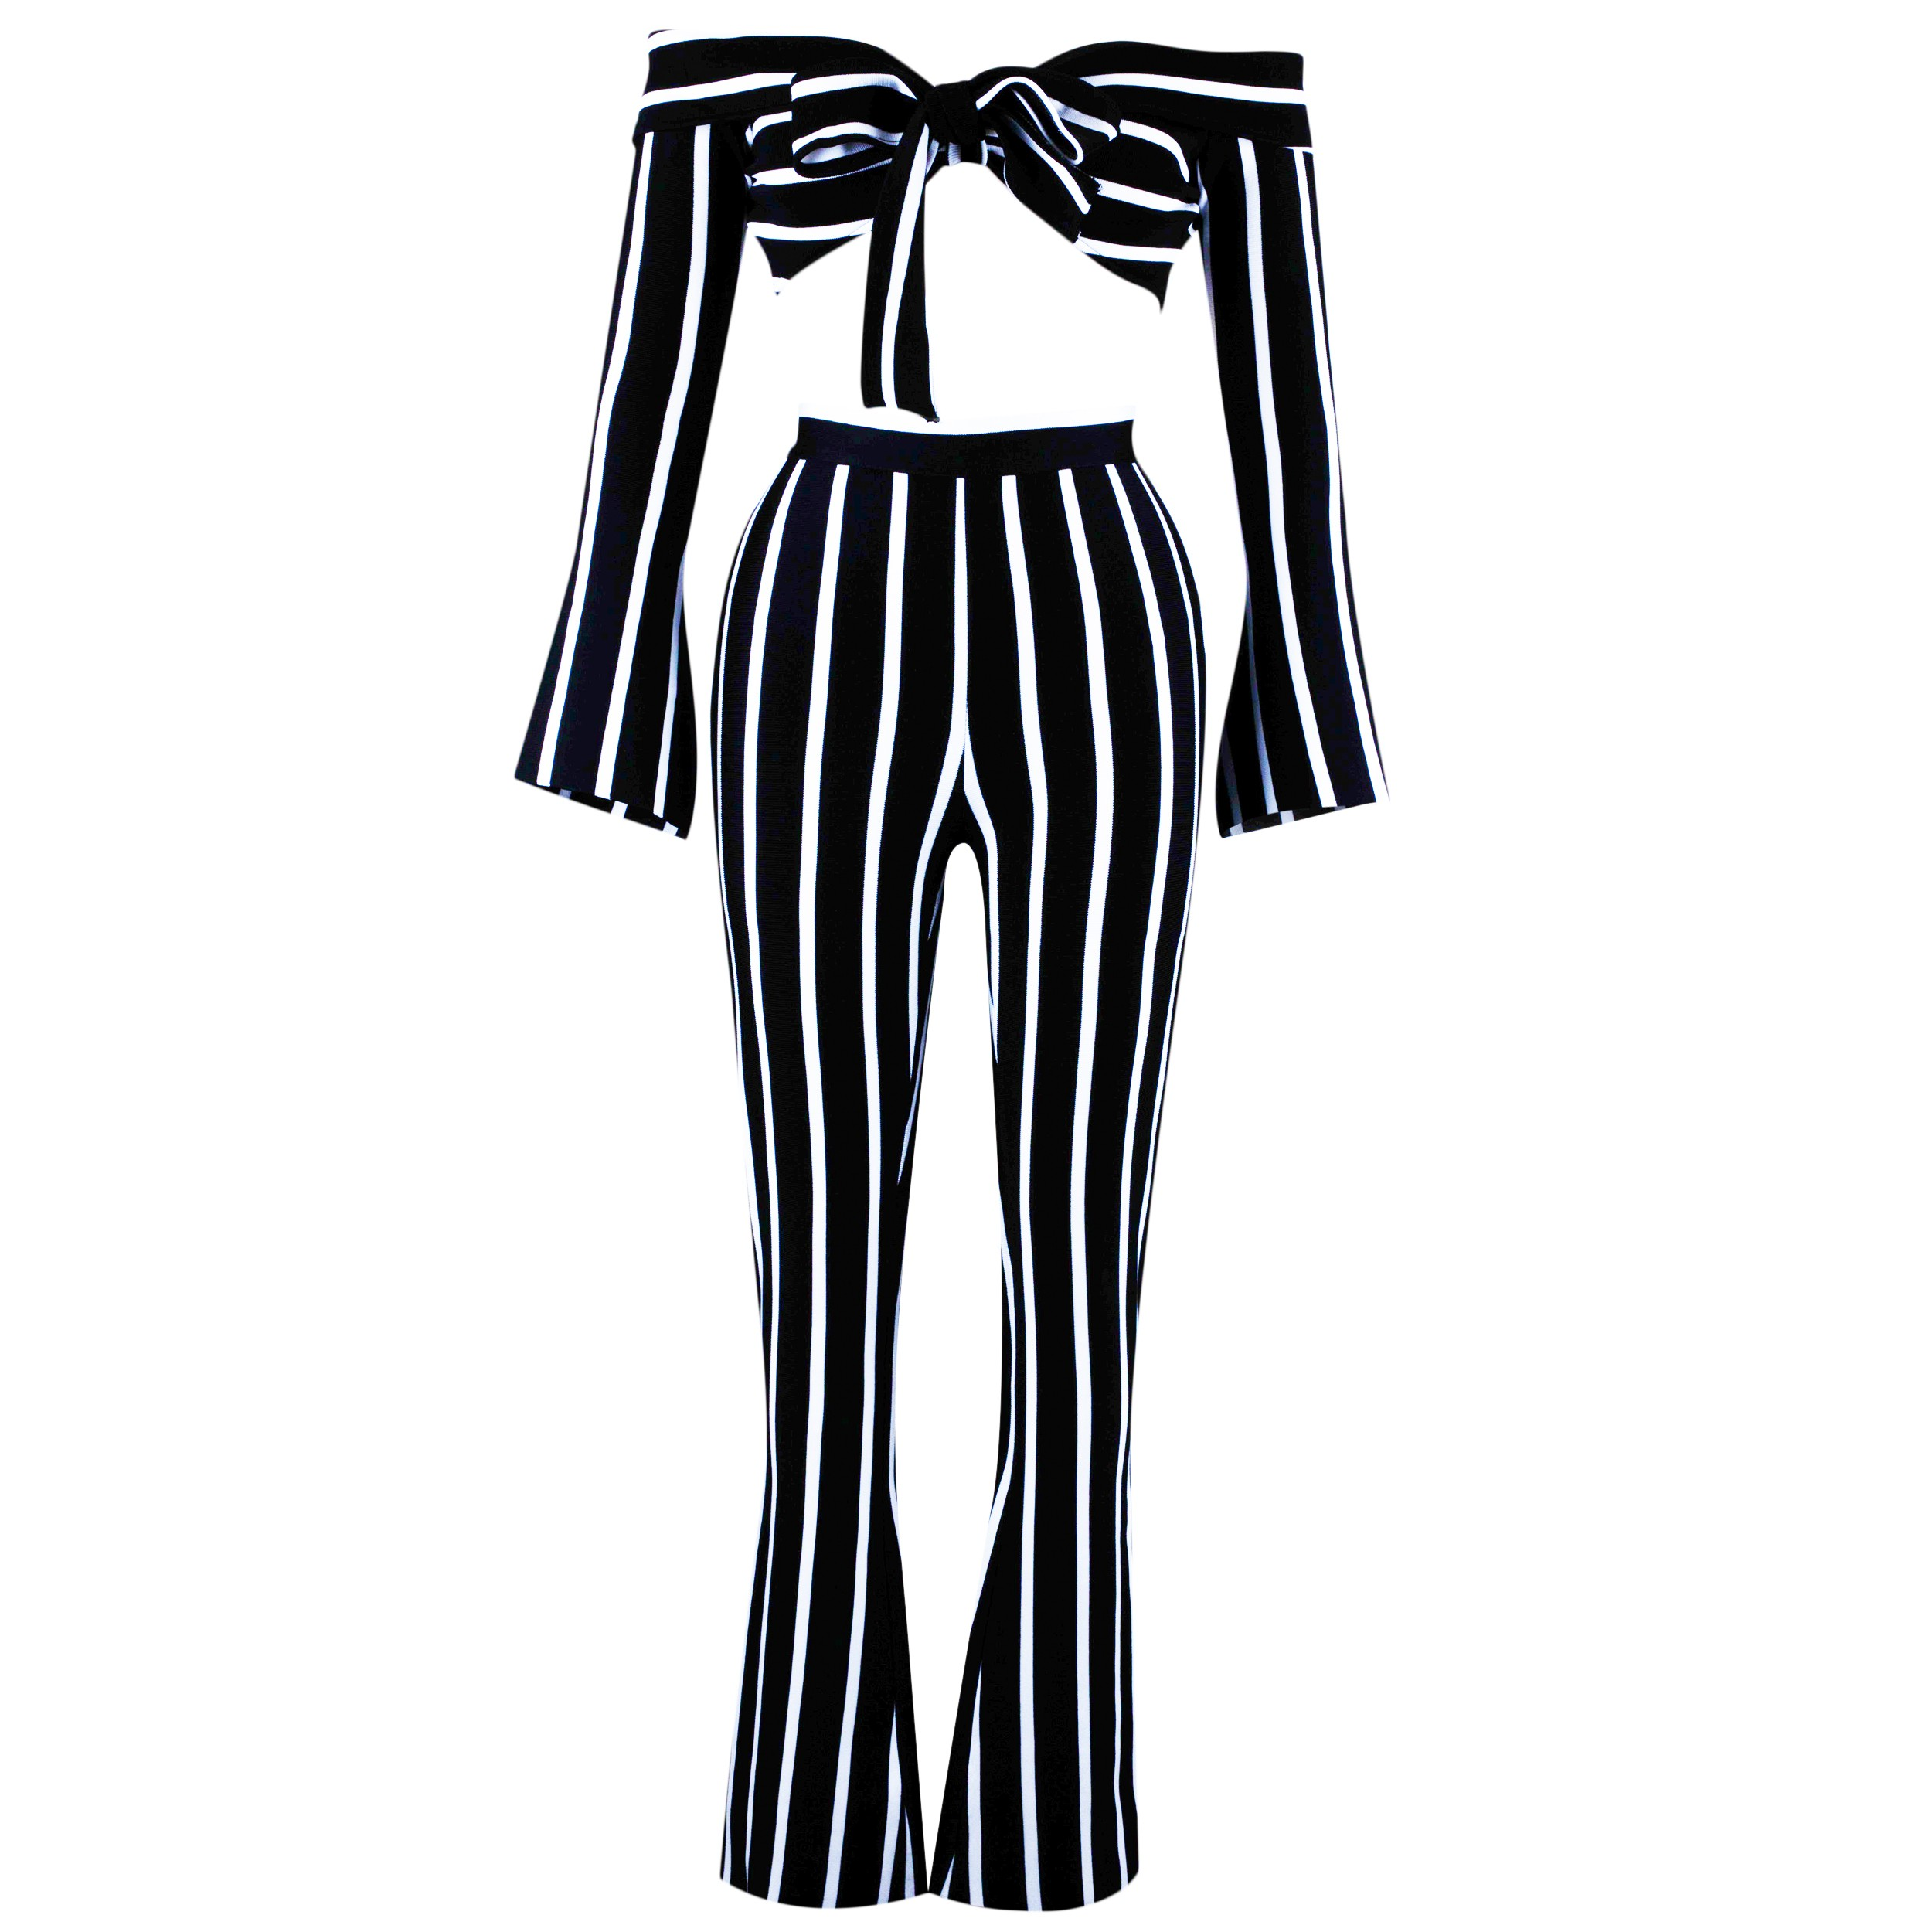 Rayon - Black Strapless Longsleeve 2 Piece Stripe Fashion Jumpsuits HJ537-Black